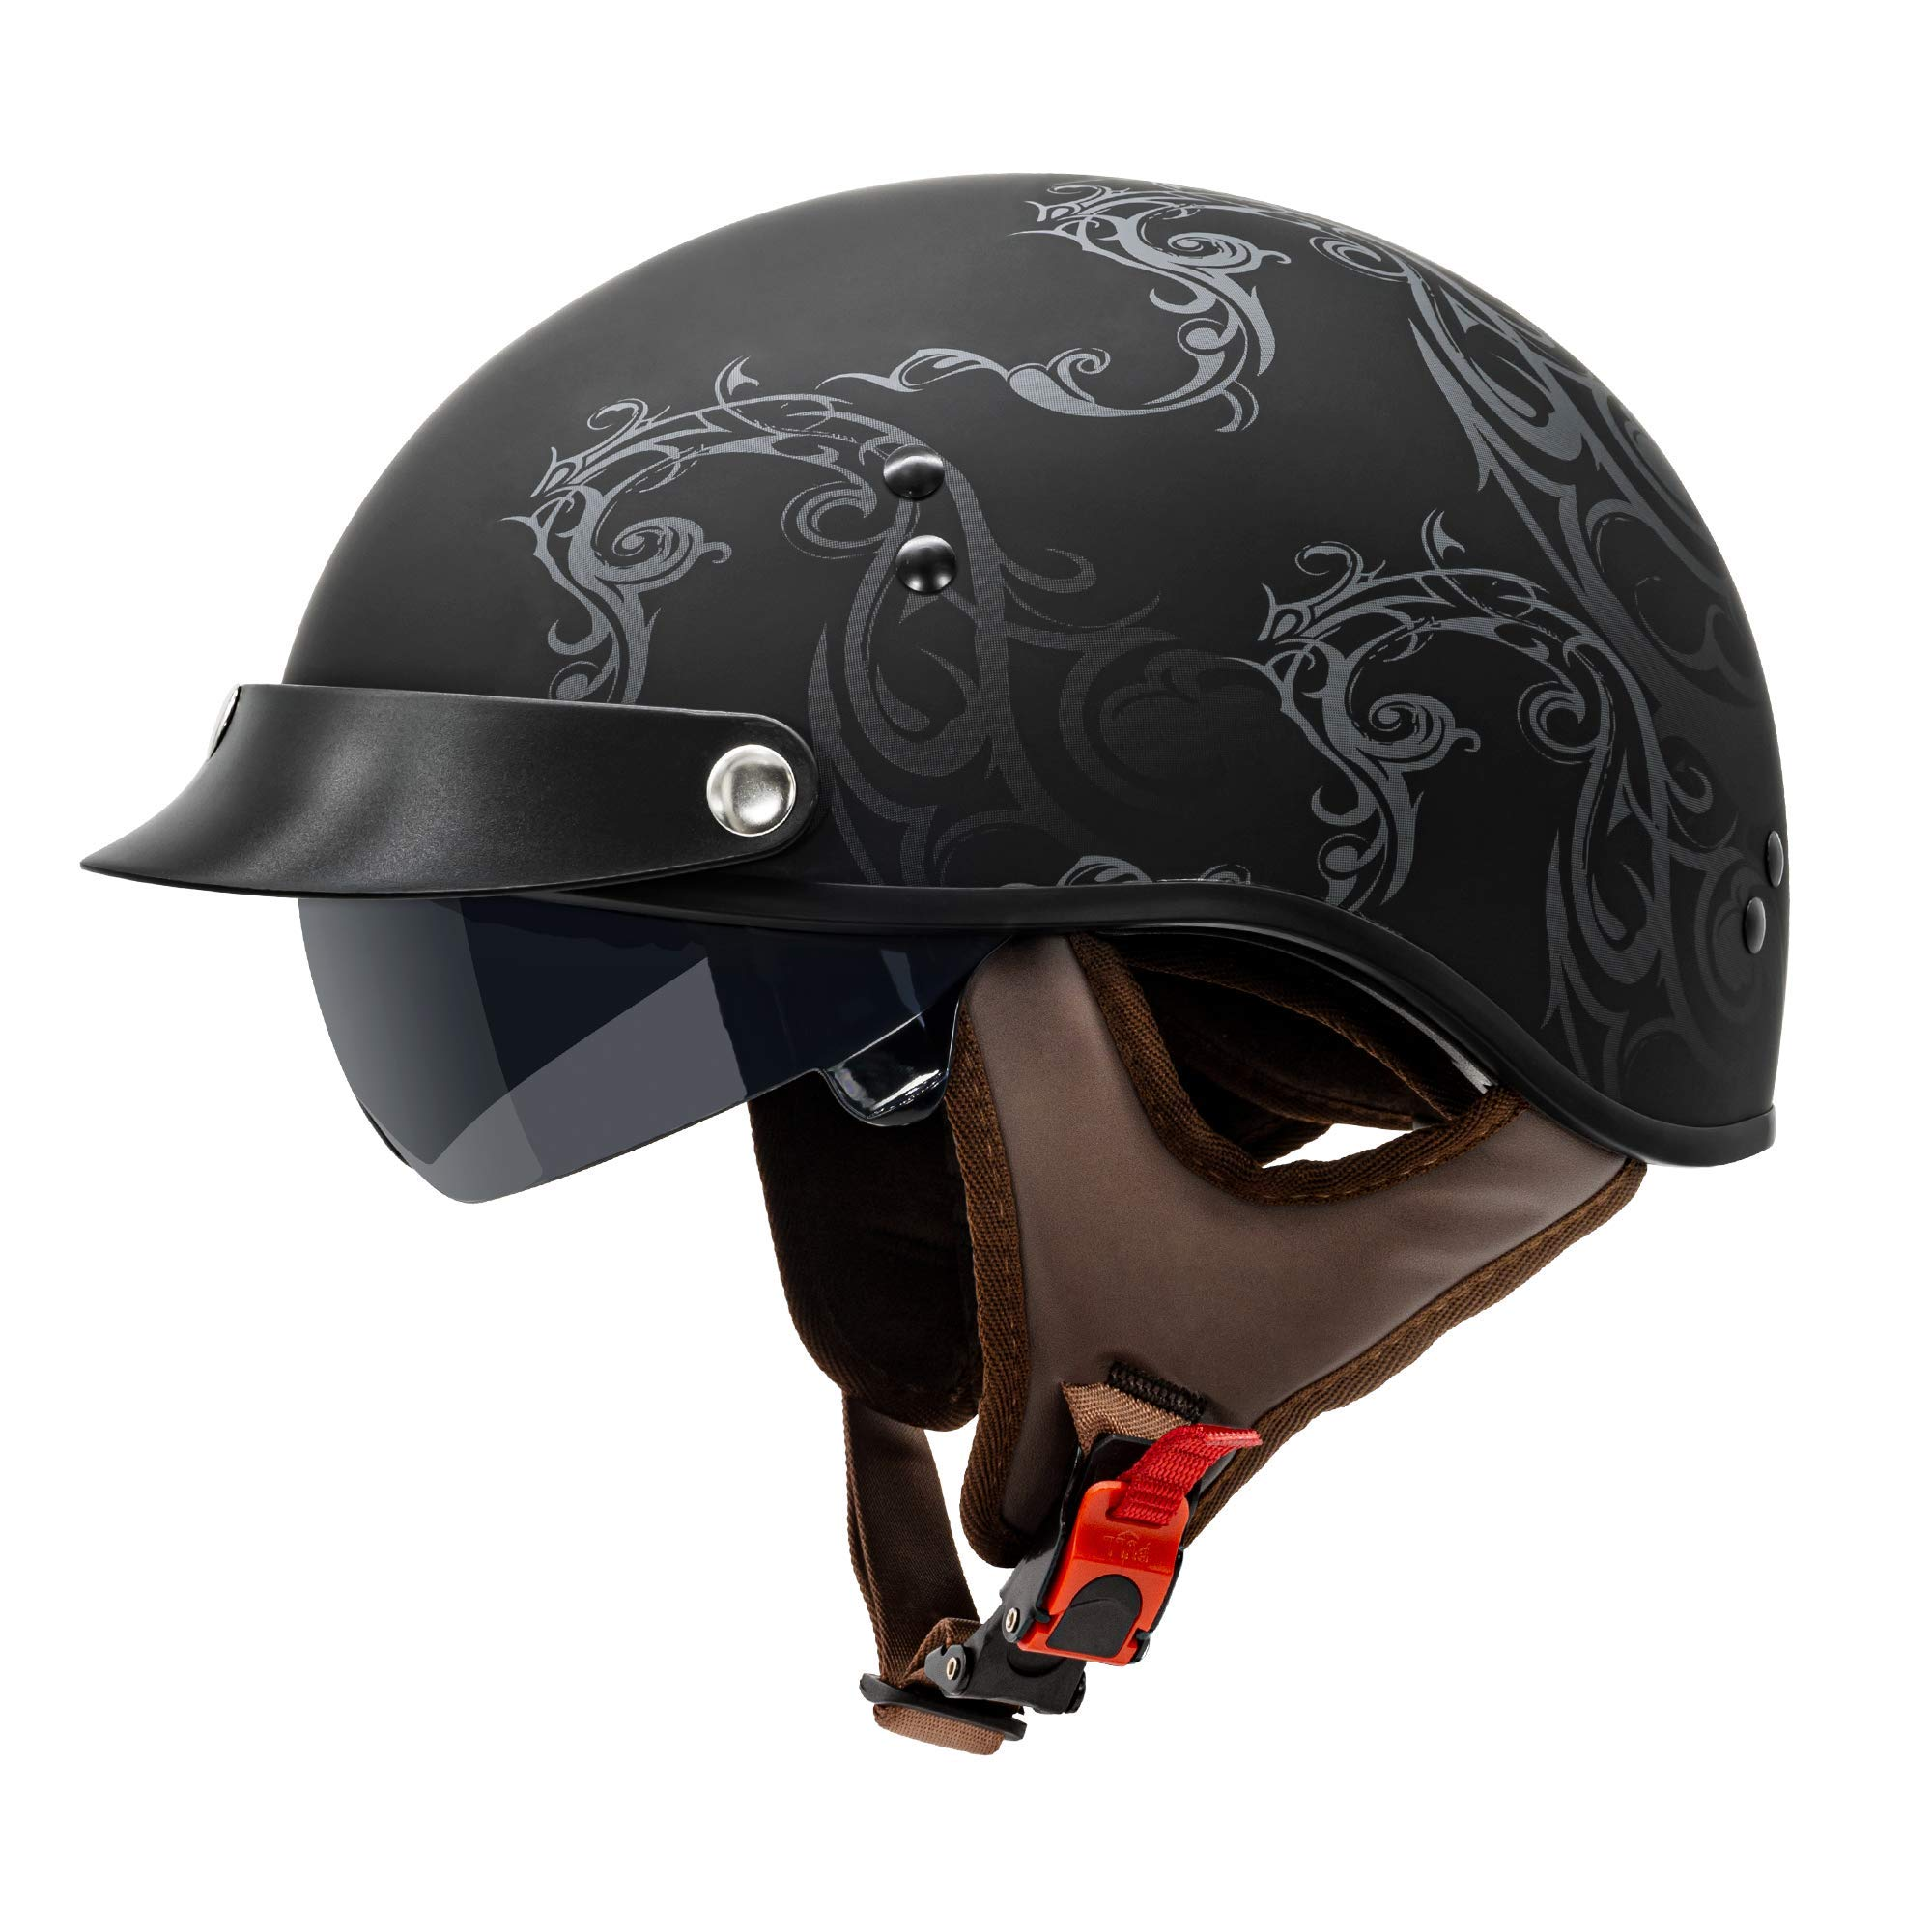 VCAN Cruiser Solid Flat Black Half Face Motorcycle Helmet with Drop-Down Sun Visor, Removable Peak and Quick Release Buckle (Scramble Line, Large)